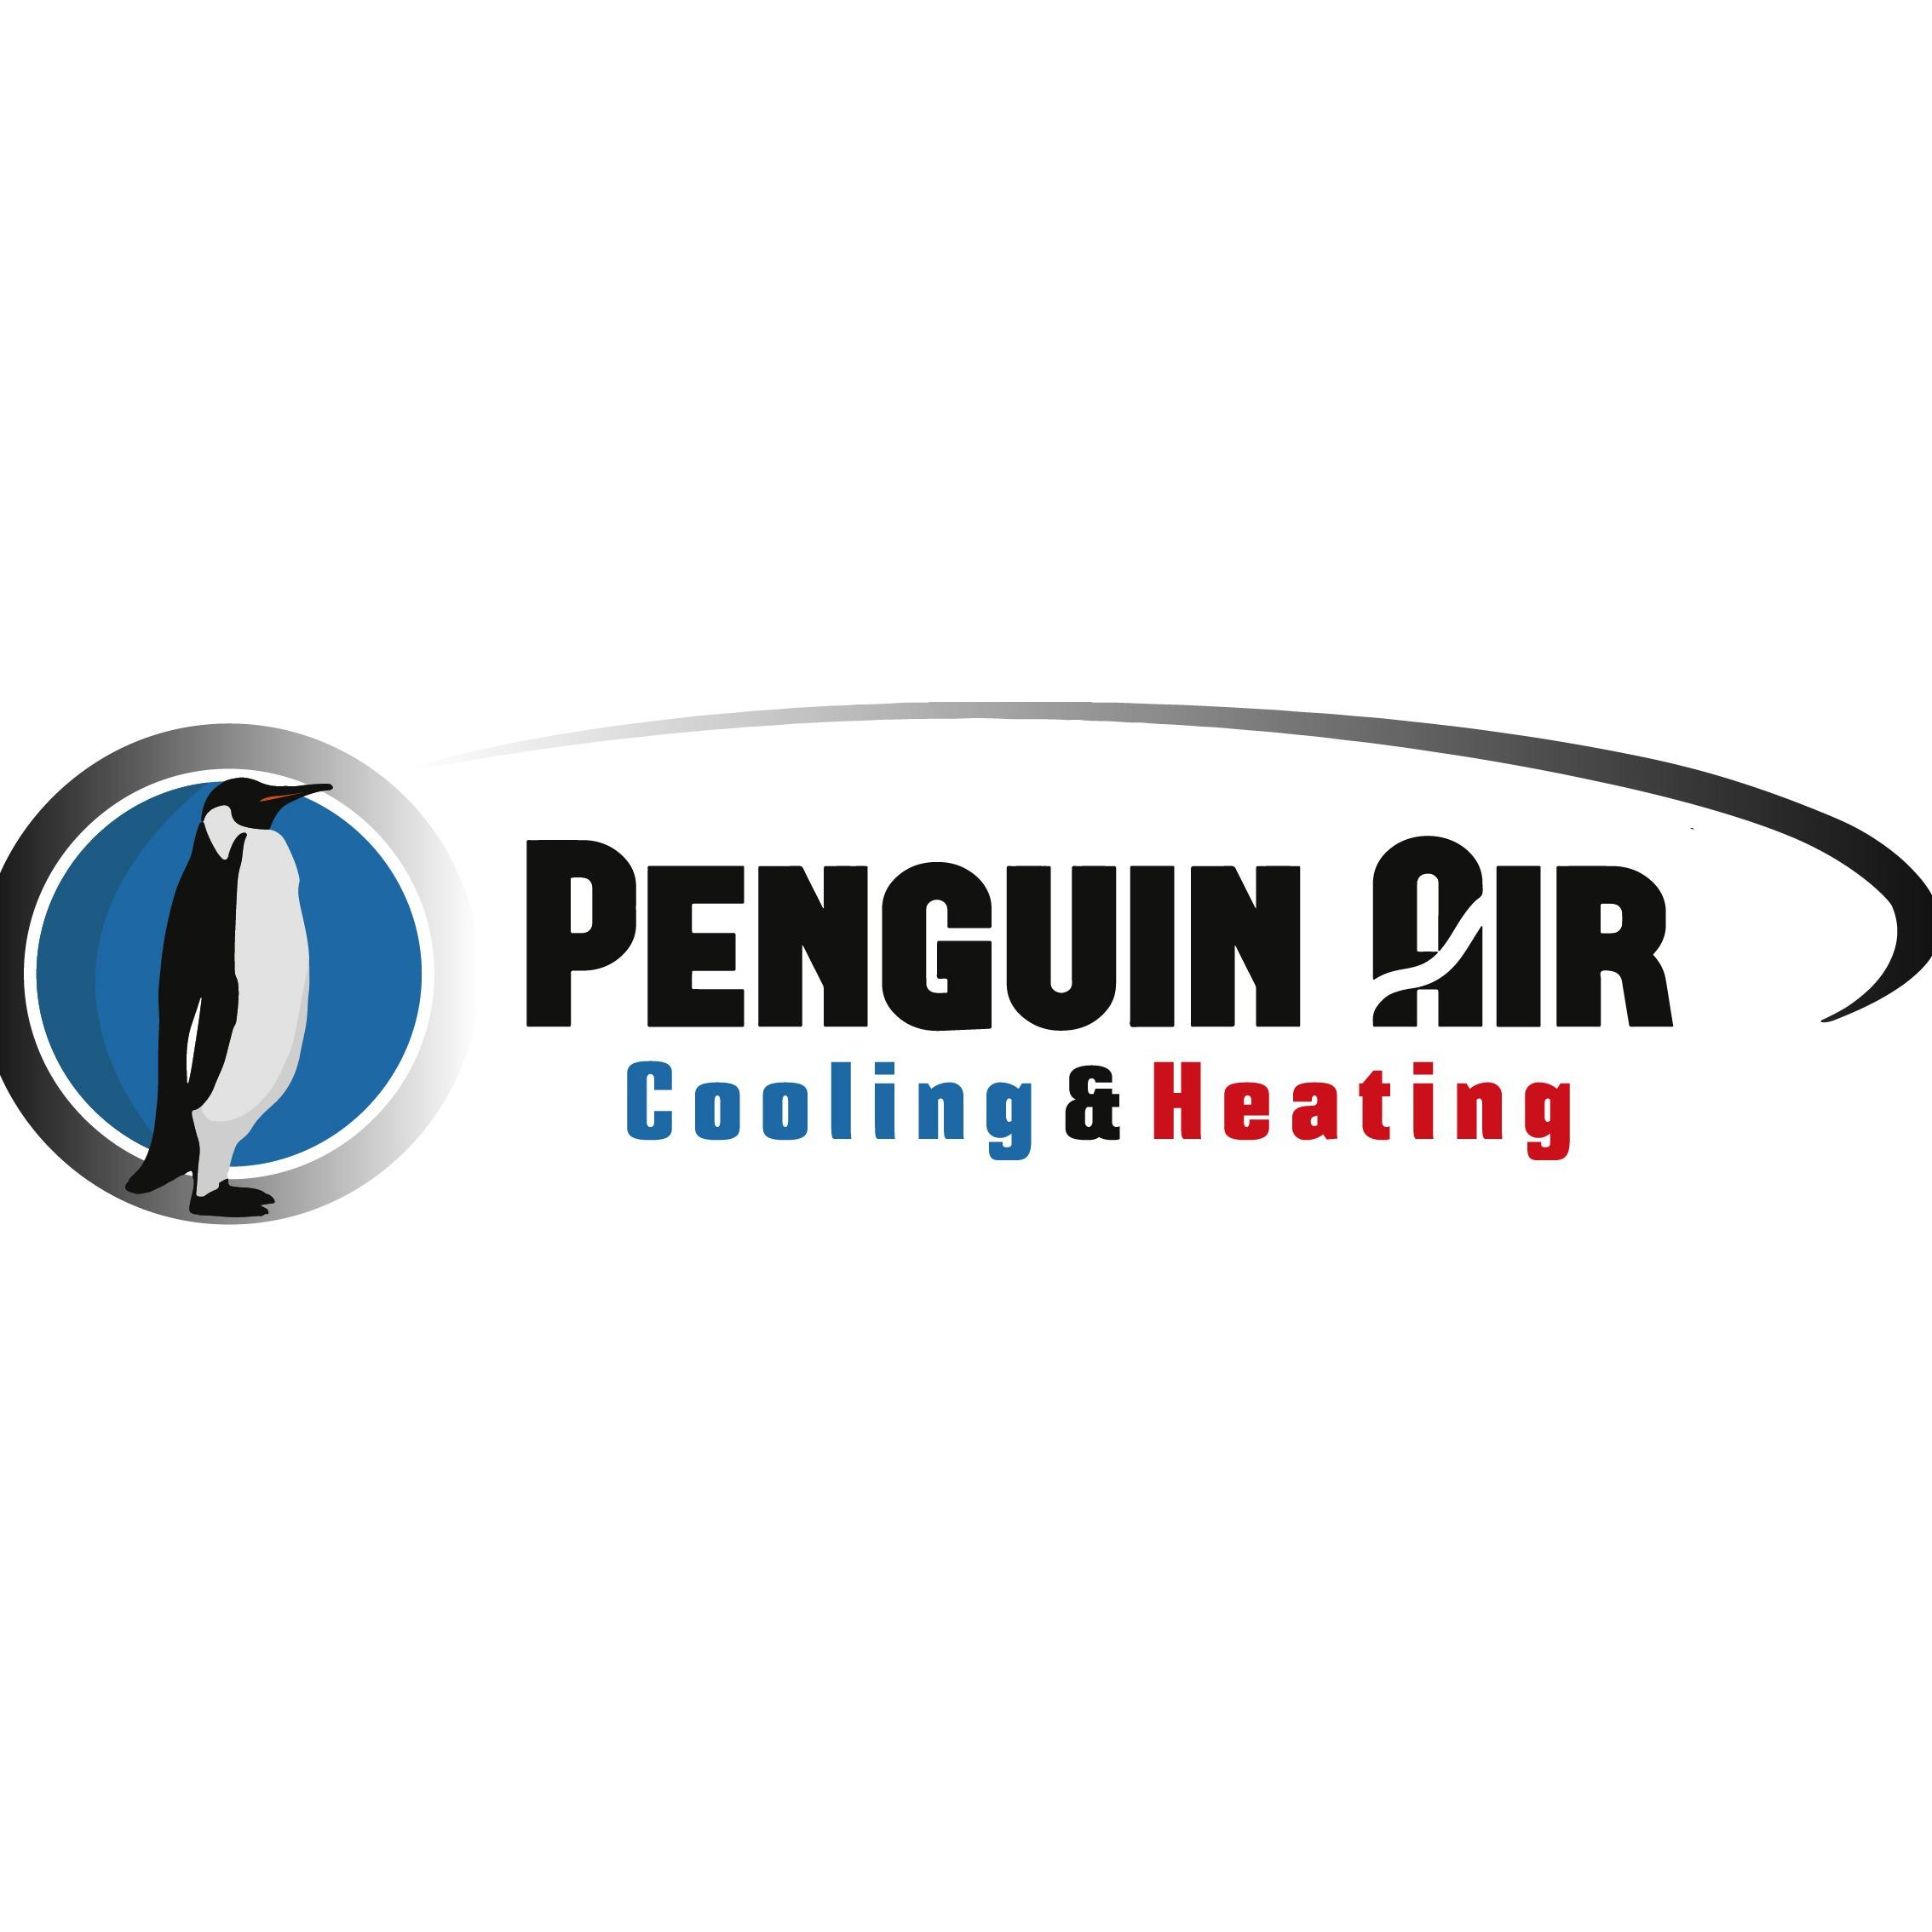 Penguin Cooling & Heating, Inc.